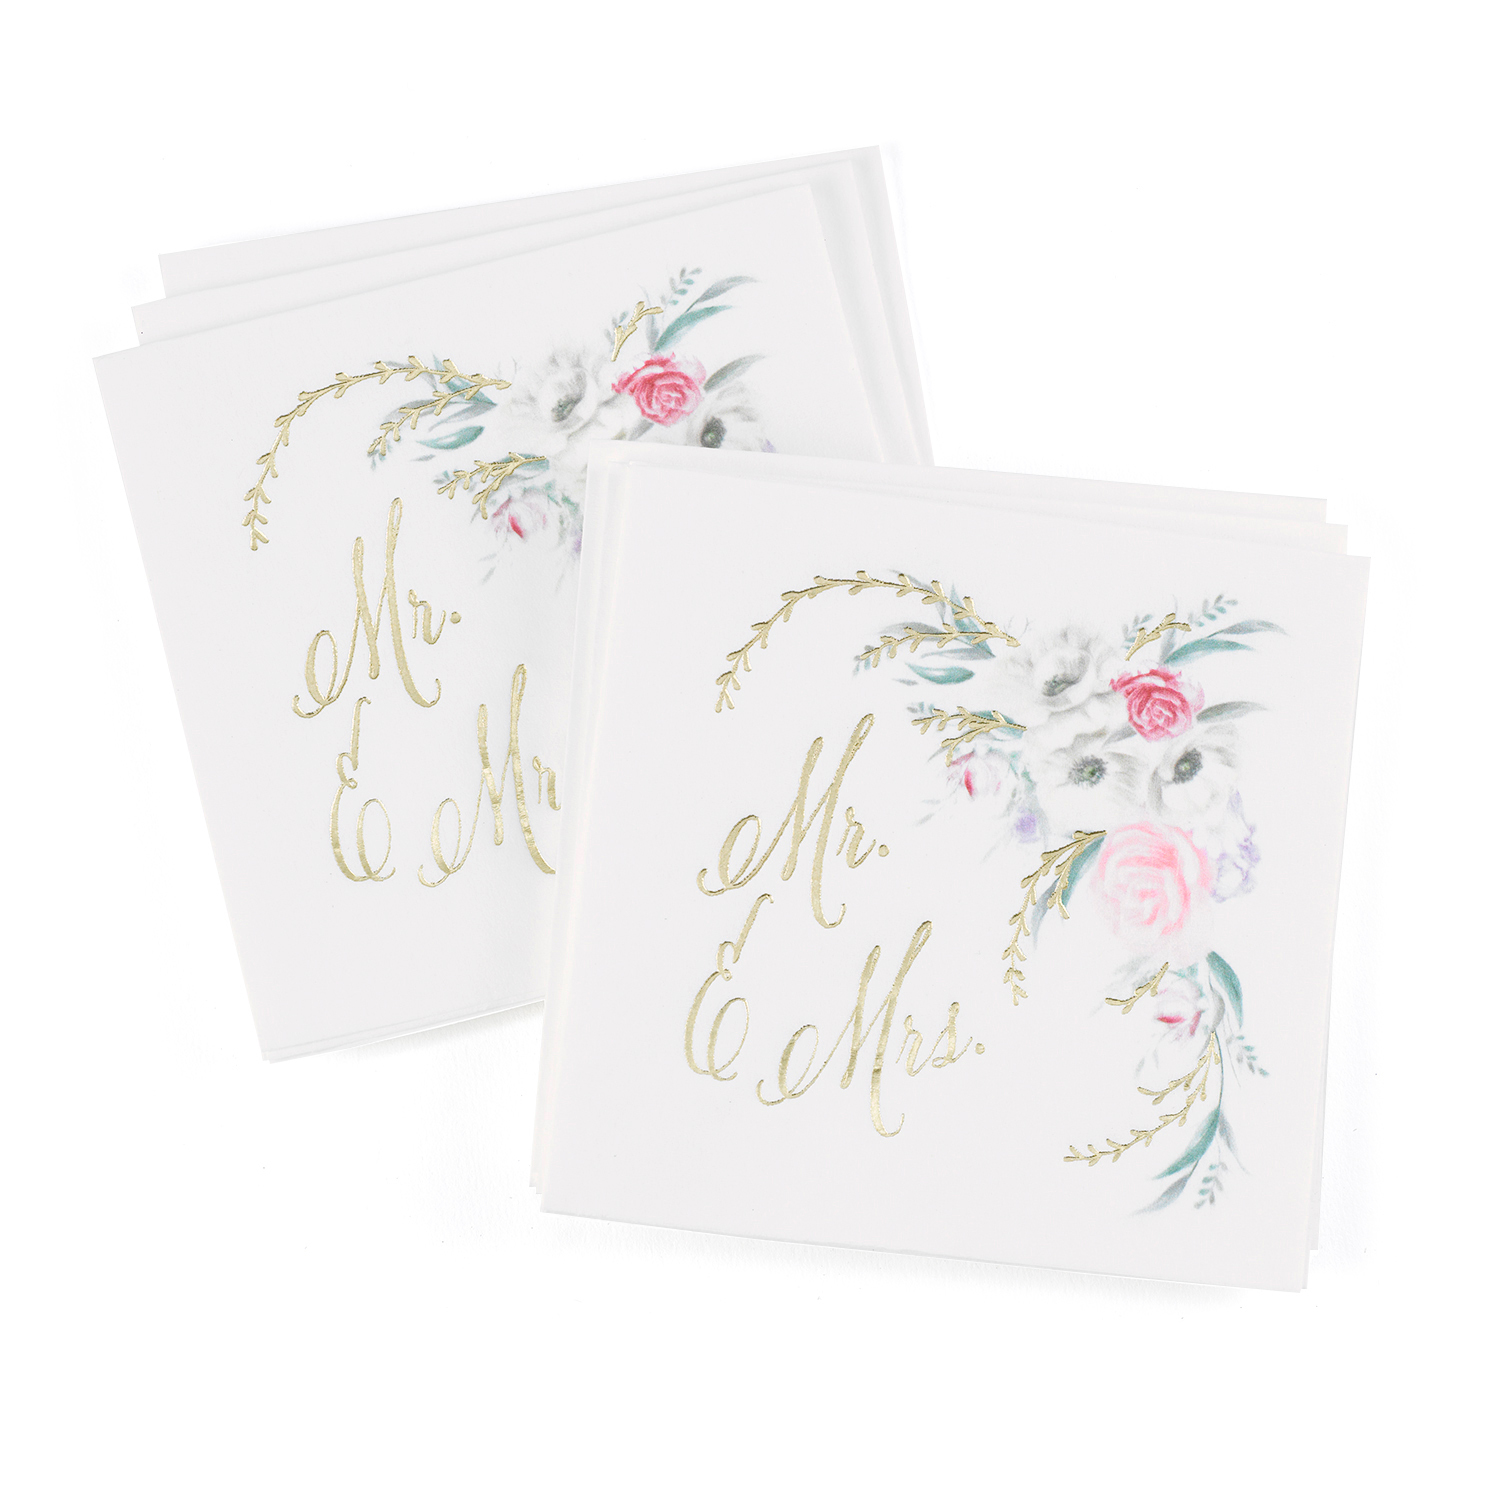 ethereal floral watercolor wedding napkins